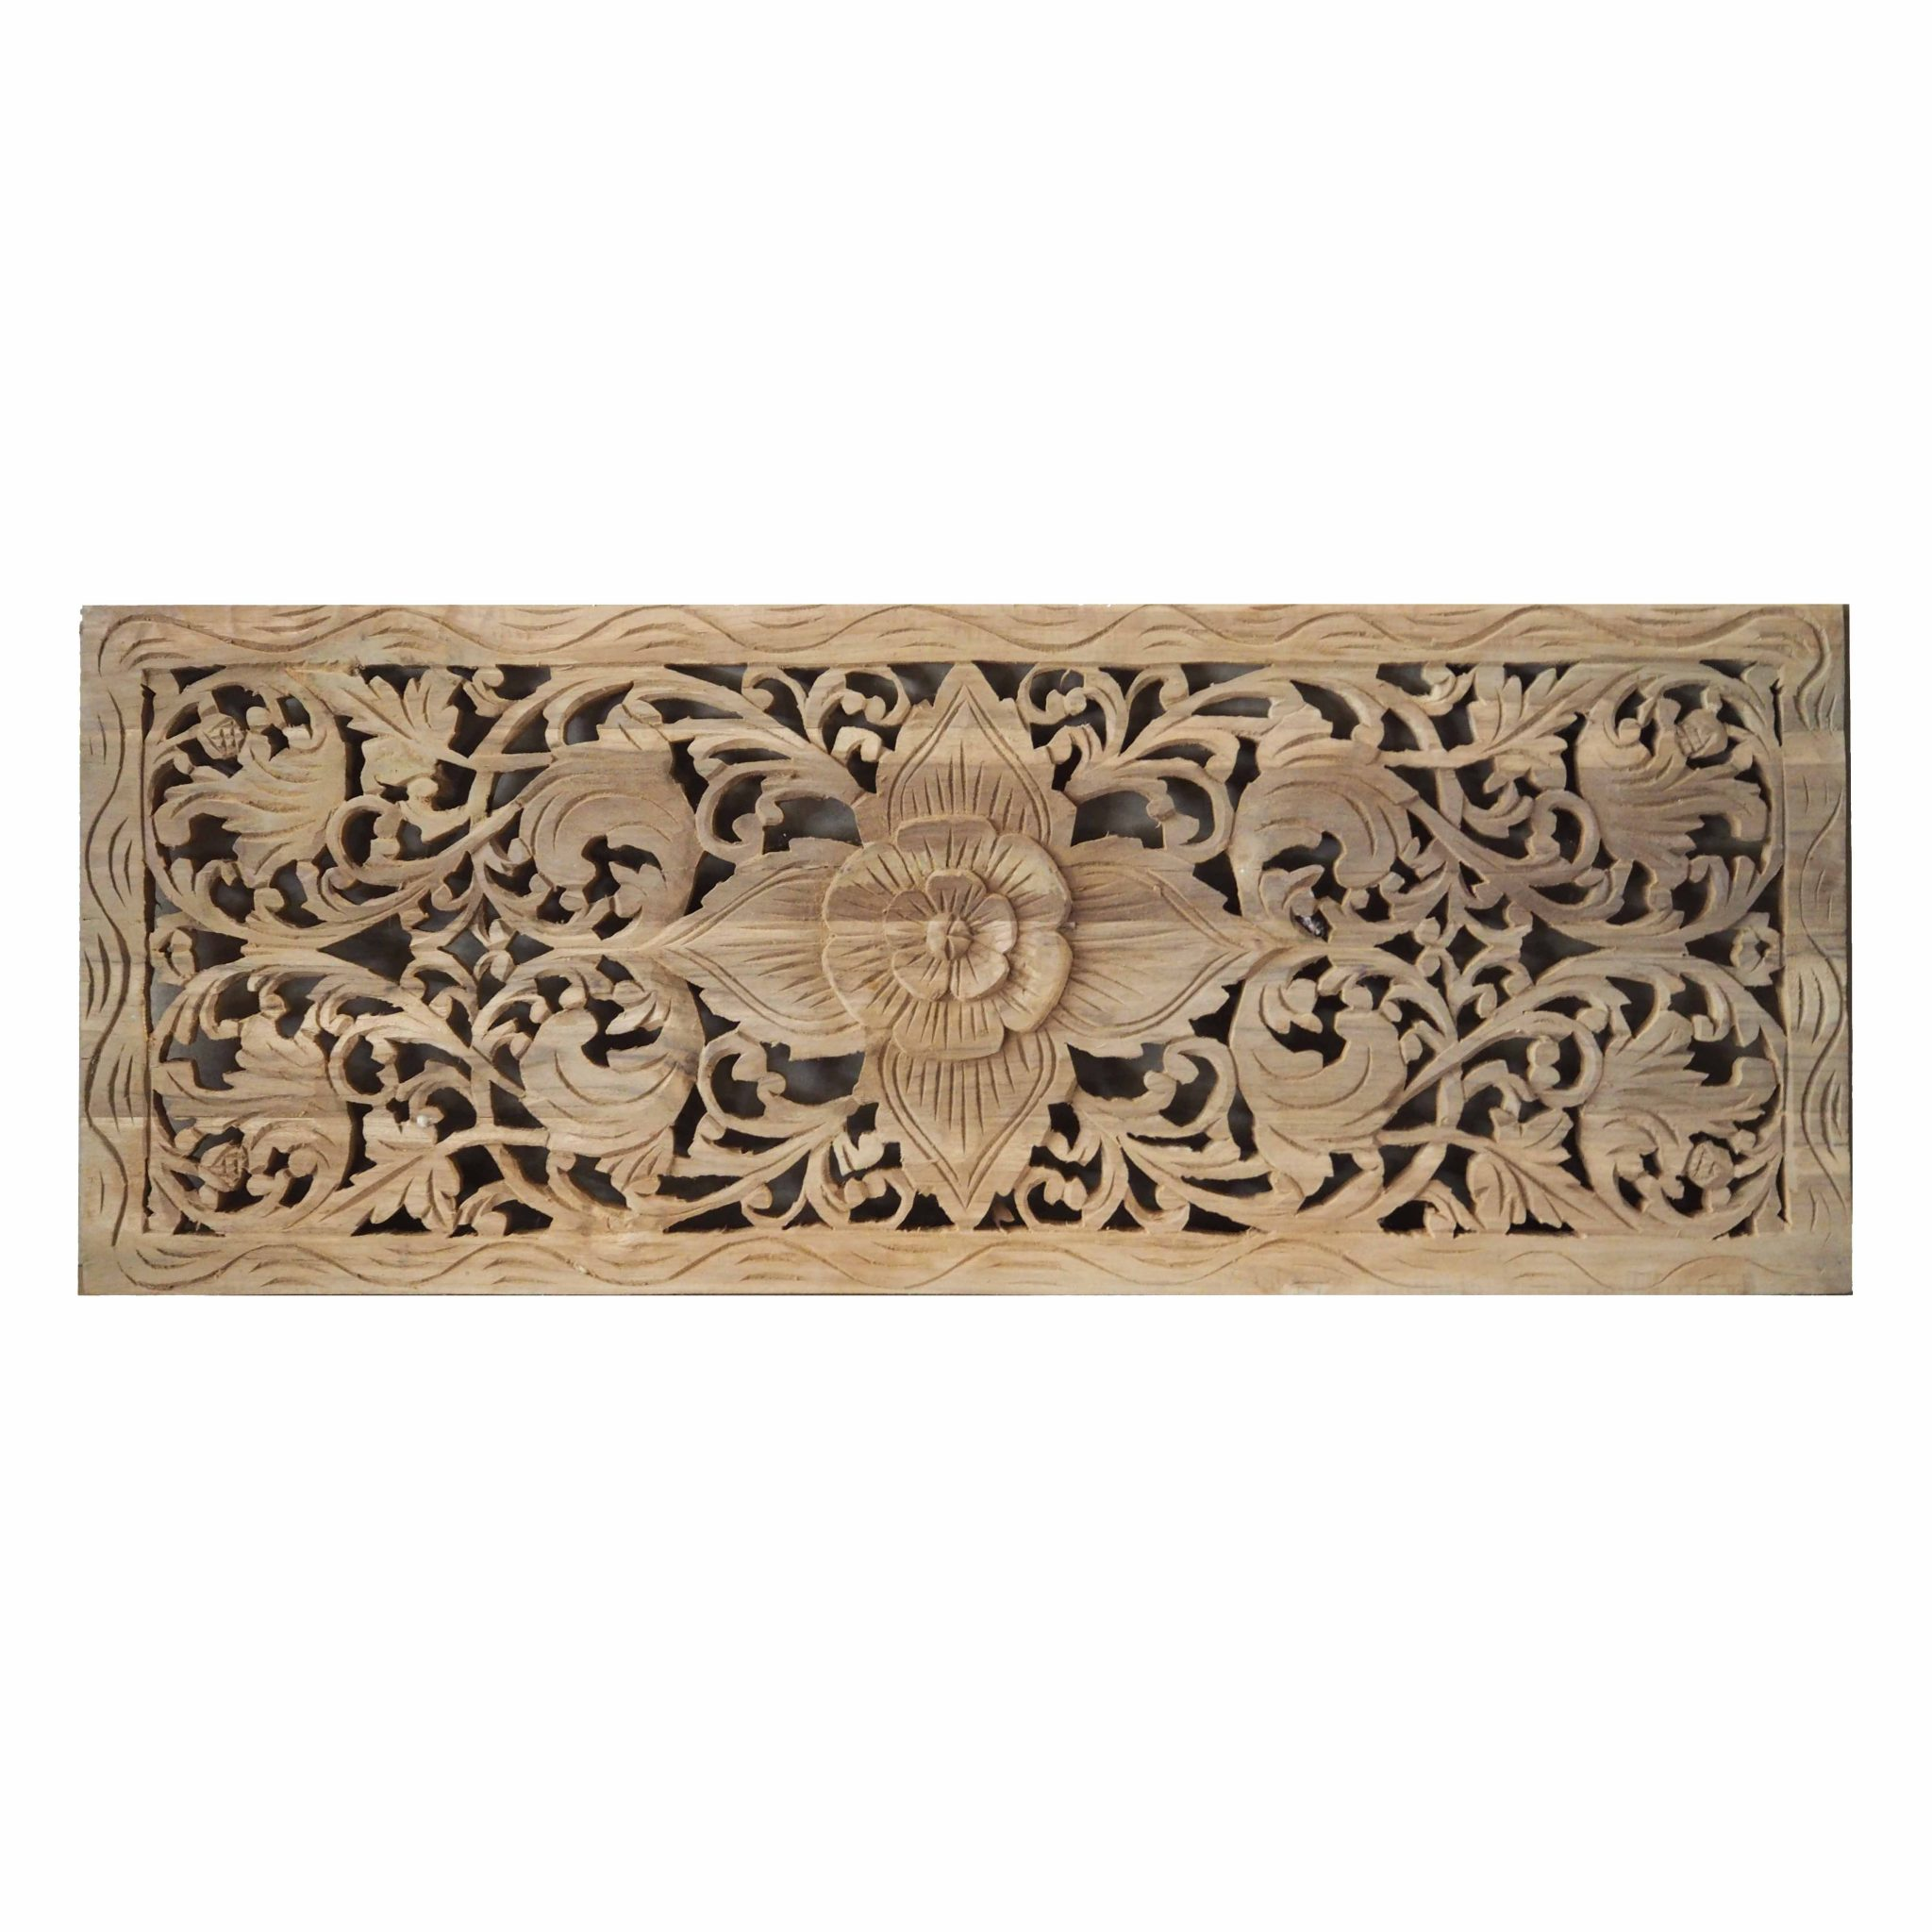 Wood Decorative Wall Art Buy Flower Wood Carving Wall Panel From Thailand Online